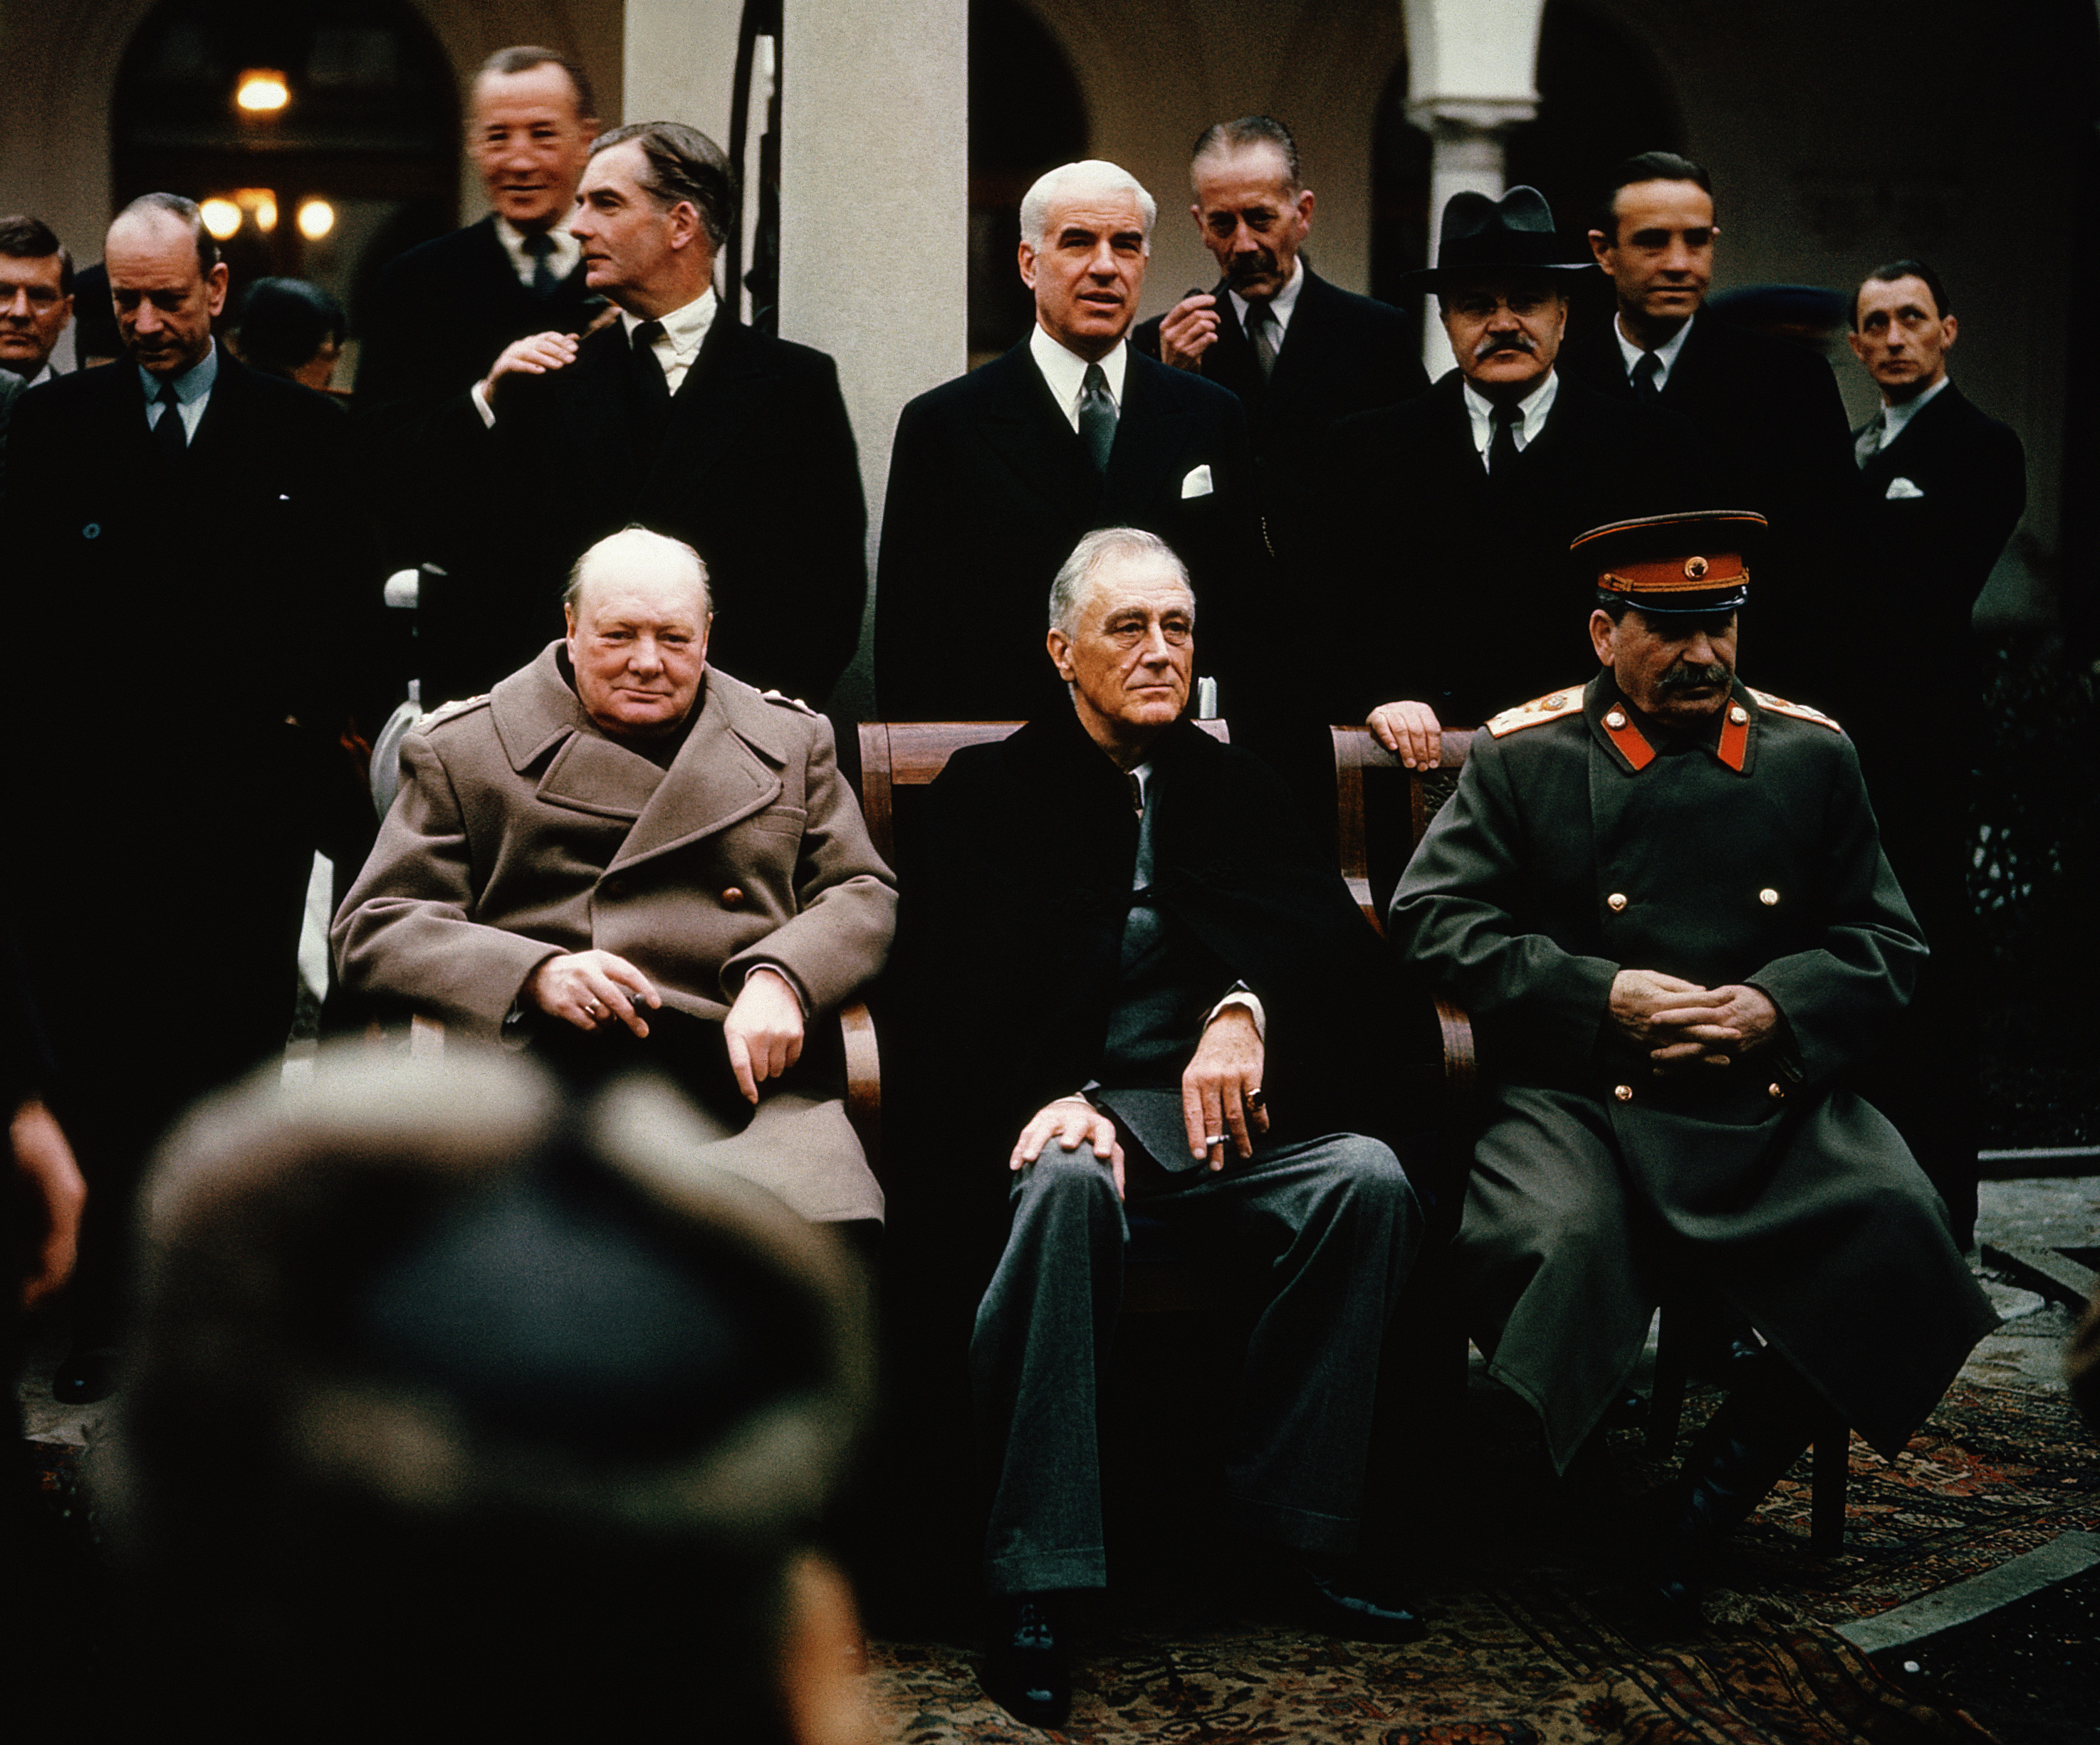 cold war yalta This alliance would ultimately fail and break down into the cold war revise test the cold war origins 1941-1948 - aqa 1 where did the grand alliance leaders meet in 1945 tehran and which of the big three leaders of the grand alliance attended both the yalta and potsdam conferences.